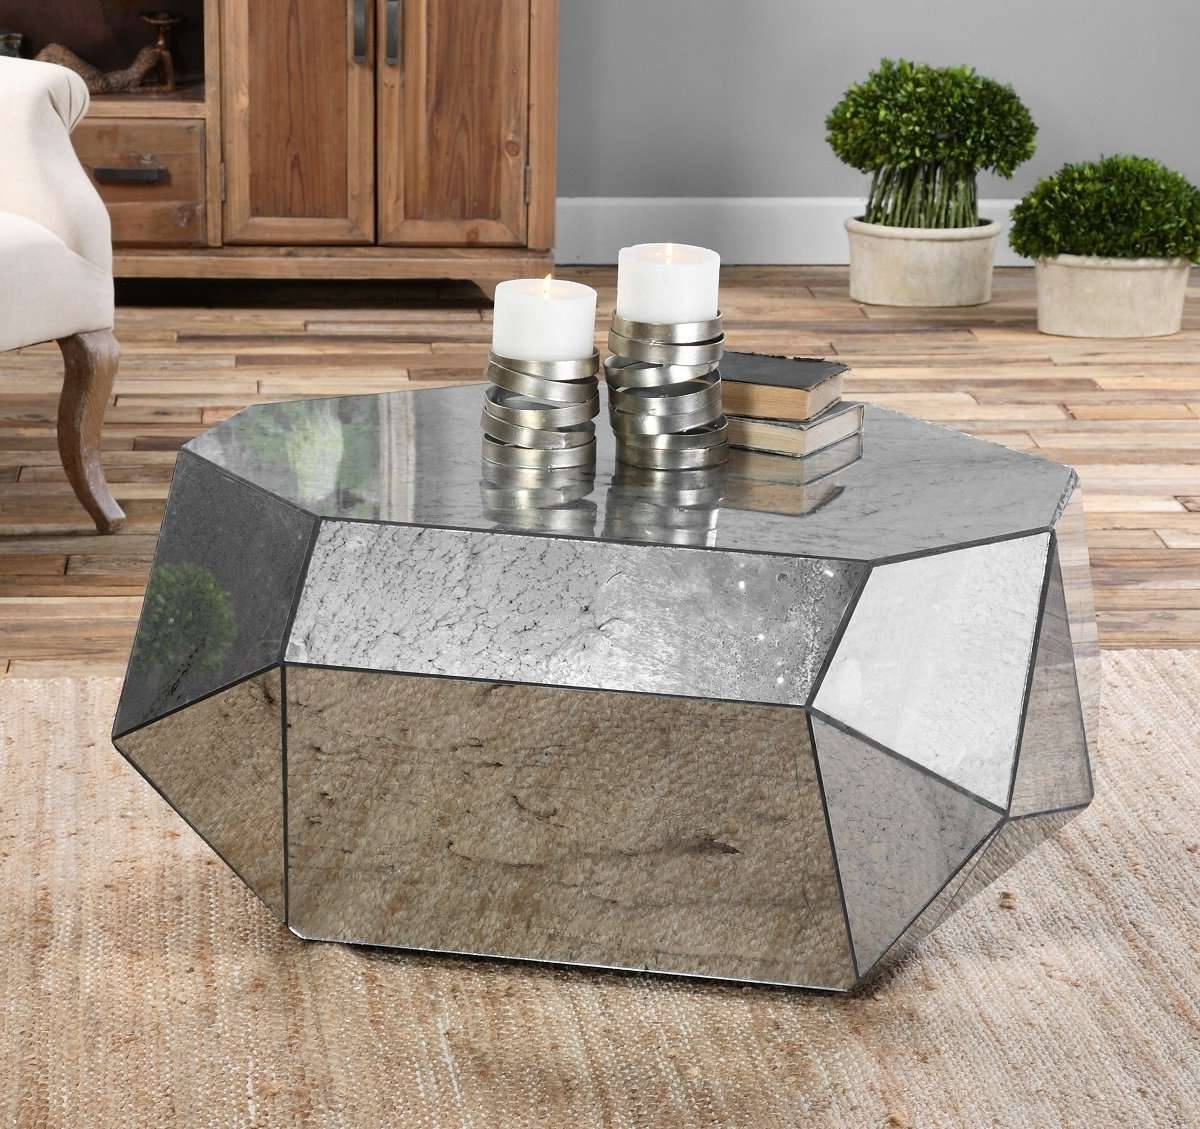 Best And Newest Round Mirrored Coffee Tables Within Round Mirrored Coffee Table — The Wooden Houses : Mirrored Coffee (View 3 of 20)